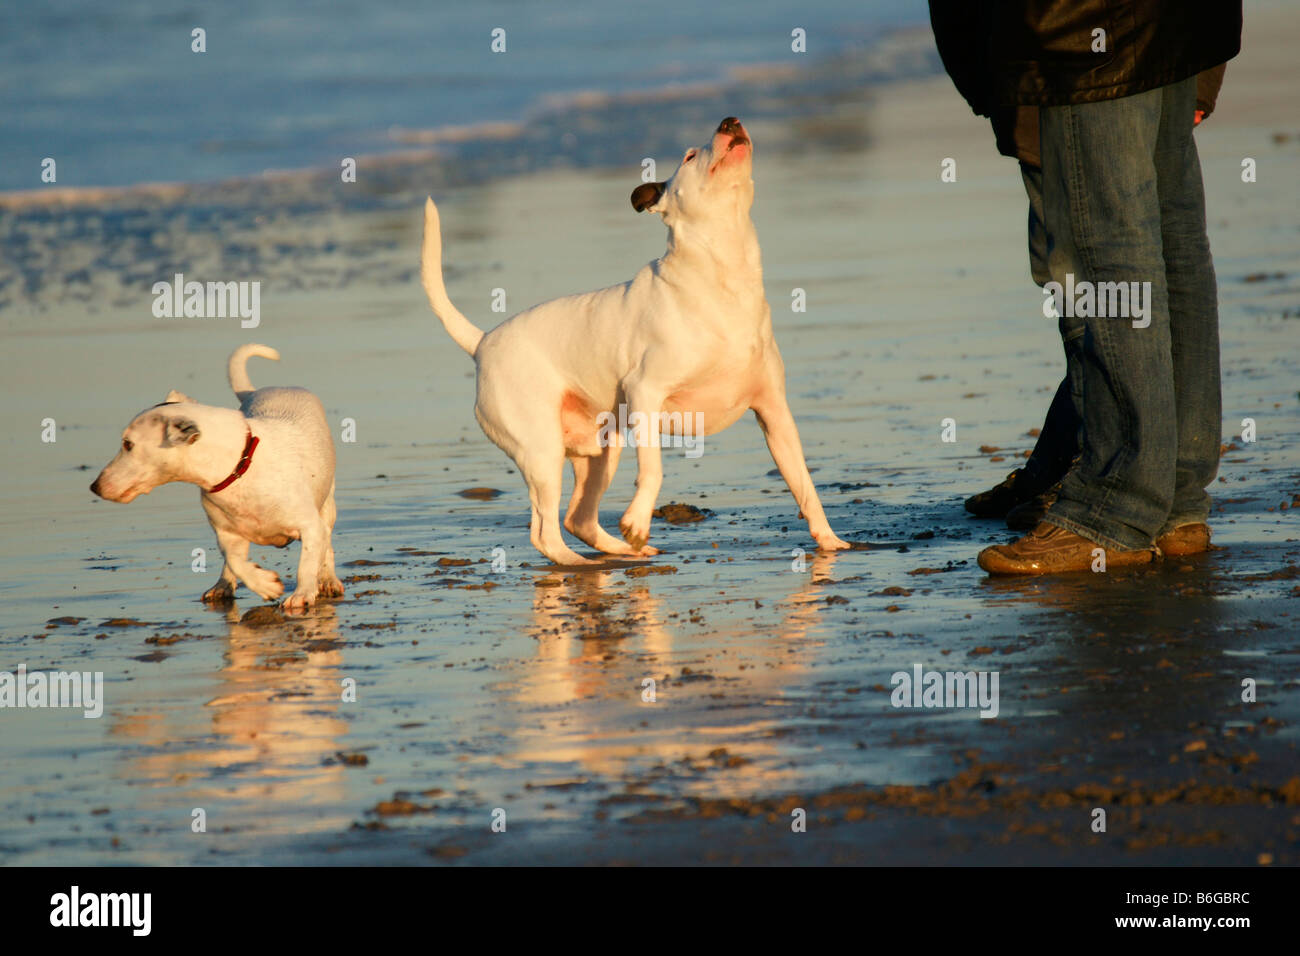 Small dogs walking waiting playing man legs on sand sea beach escaping water wave awaiting vigilant order - Stock Image